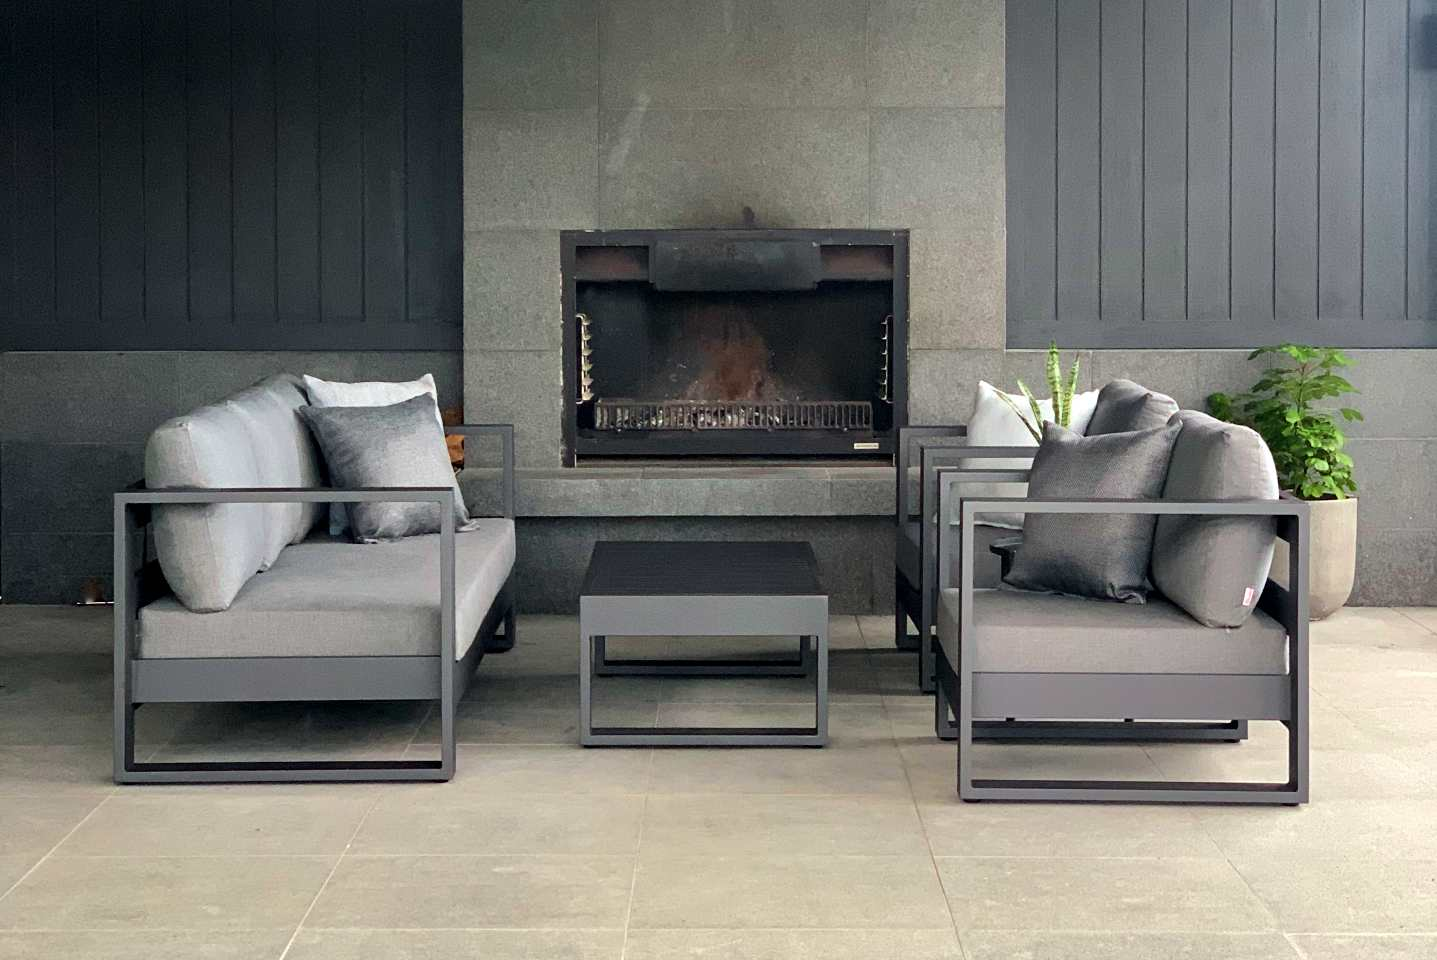 dark outdoor furniture set nz